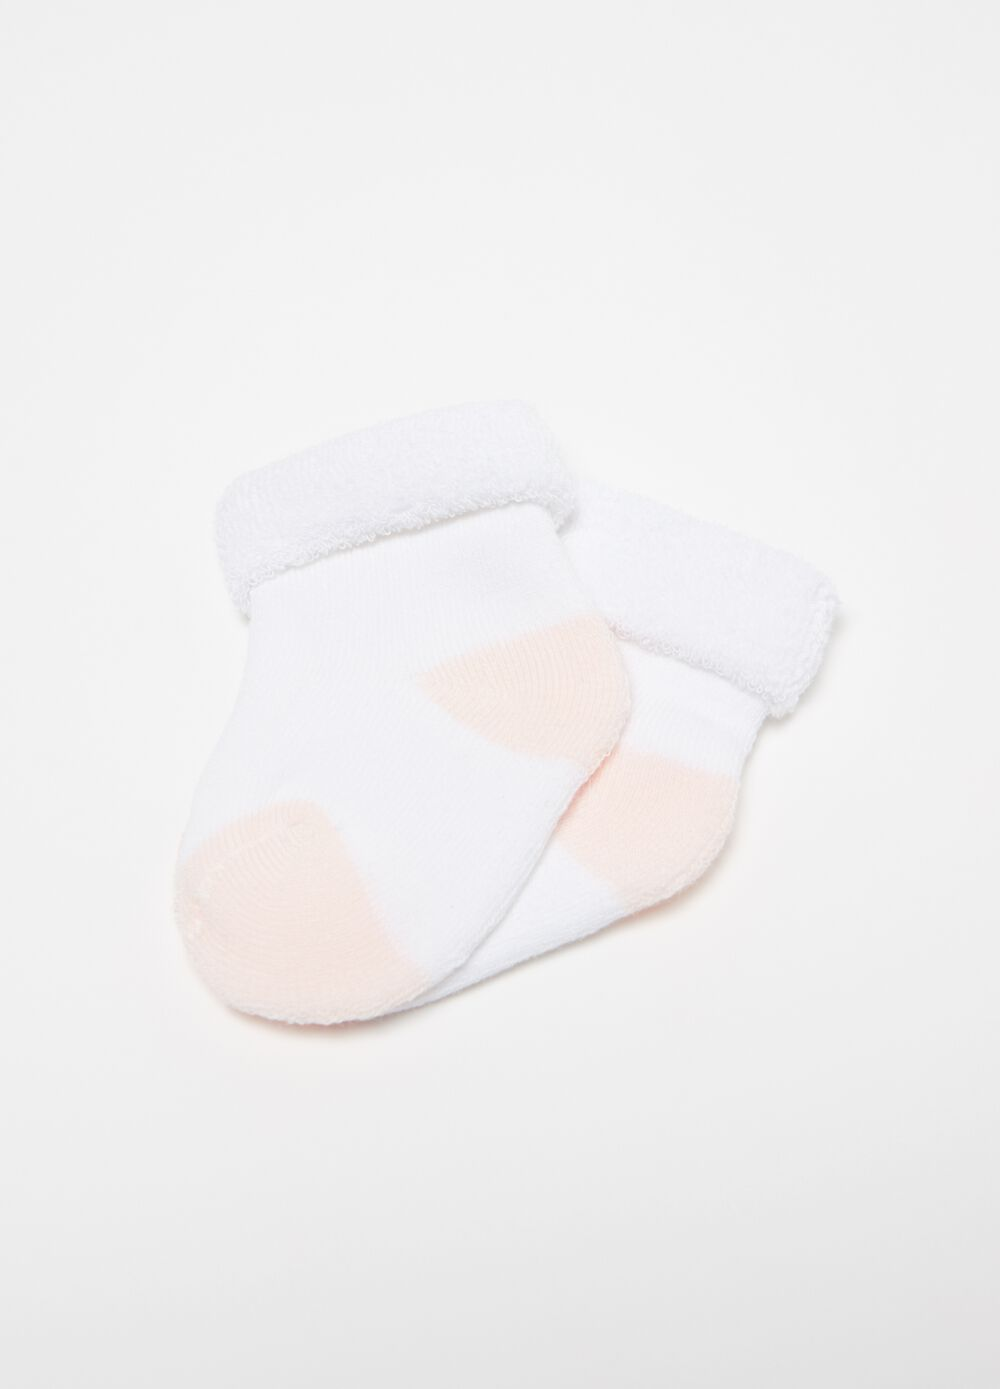 Short socks with contrasting toe and heel